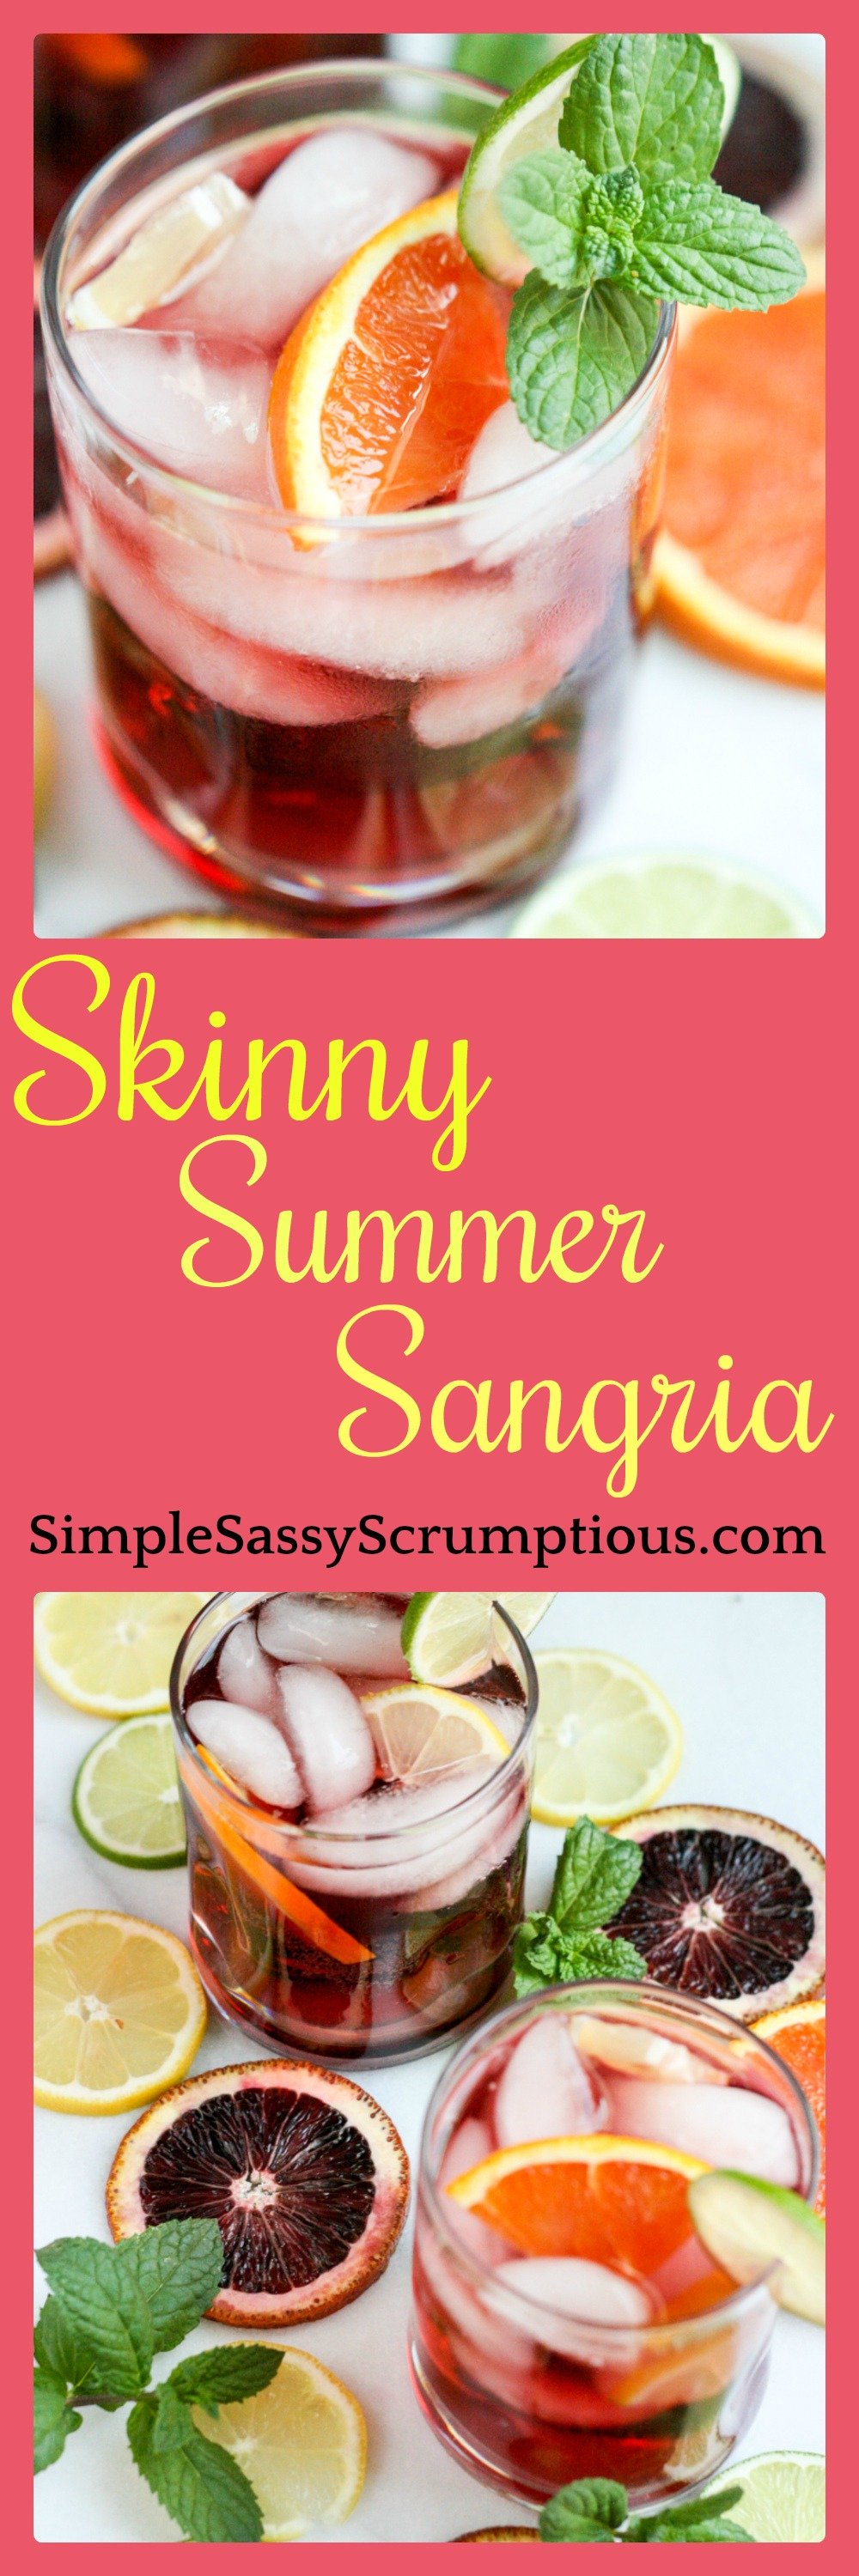 Skinny Summer Sangria Simple Sassy And Scrumptious